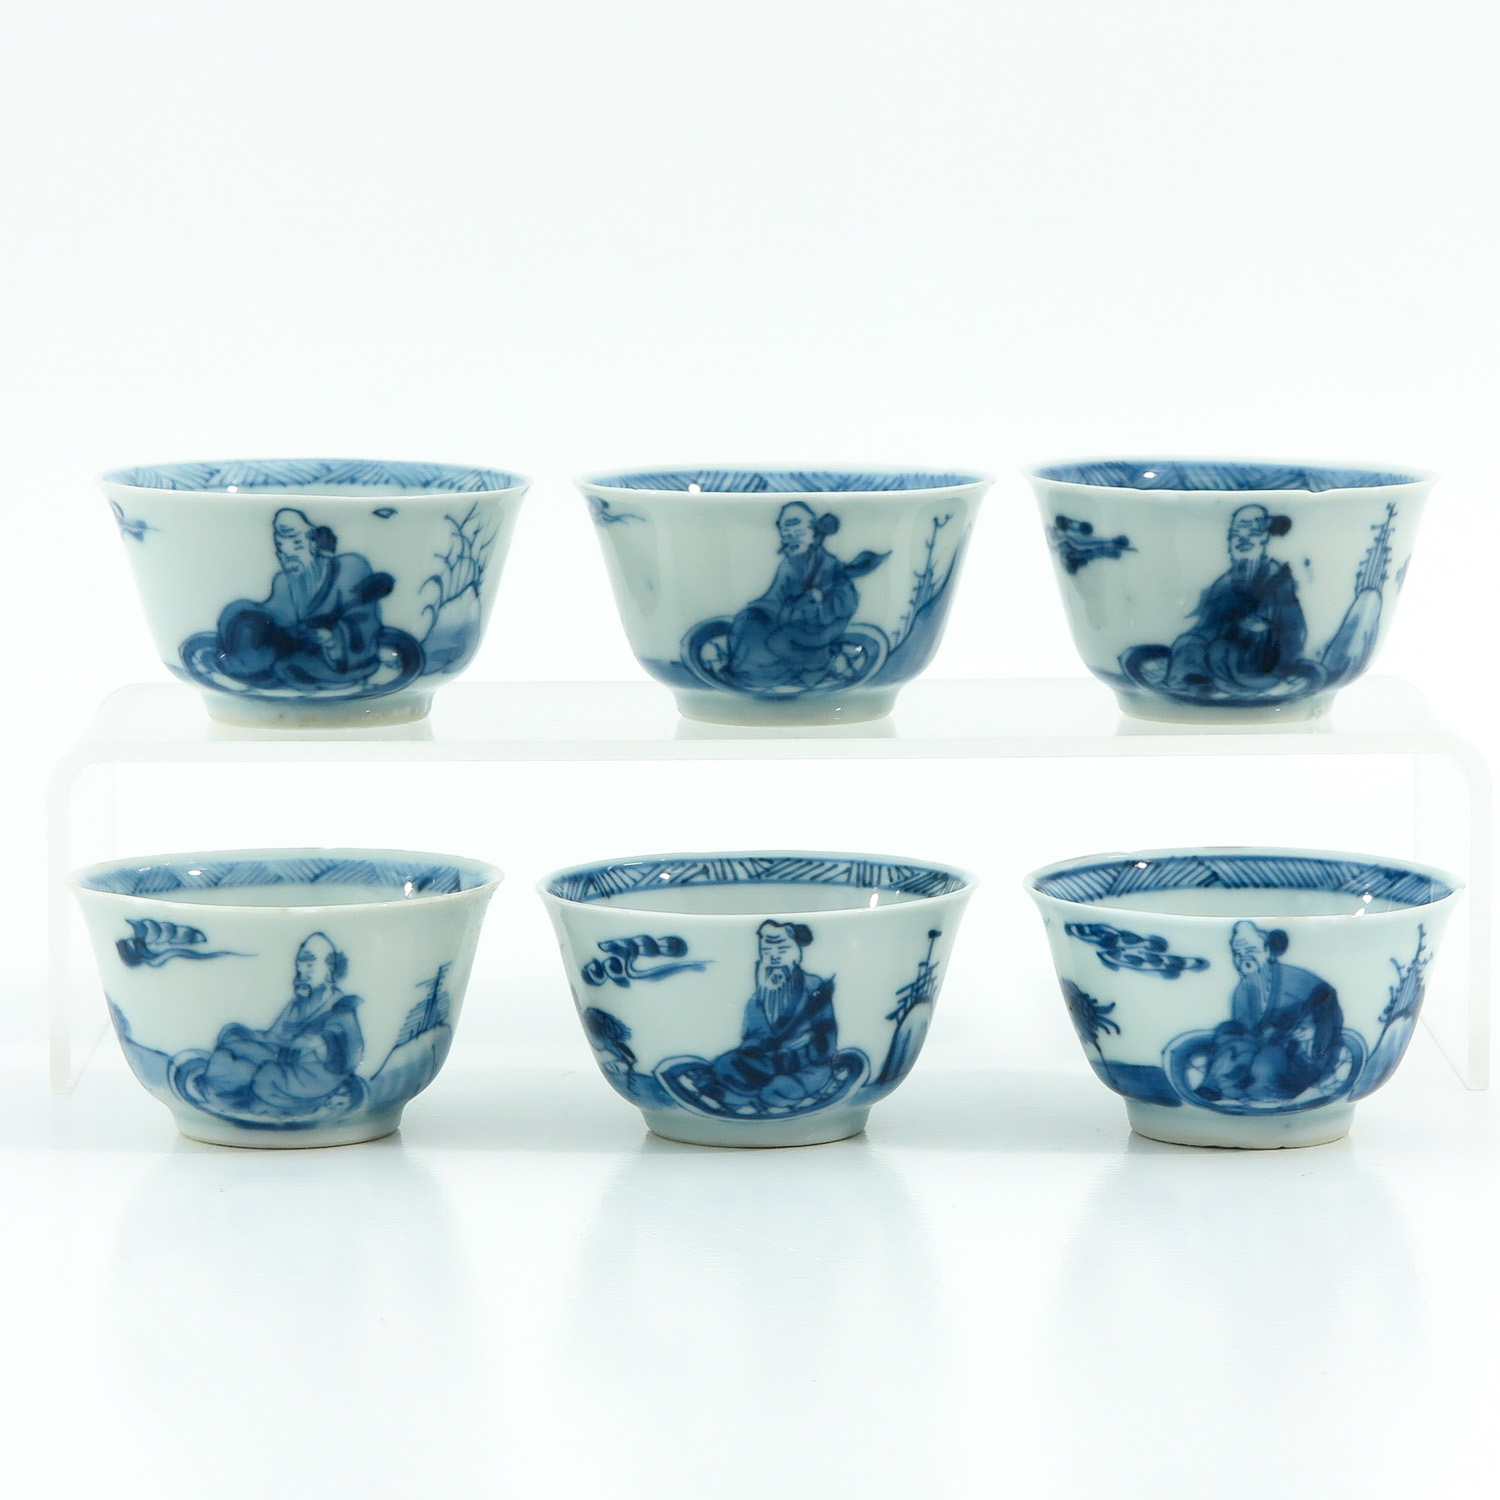 A Series of 6 Blue and White Cups